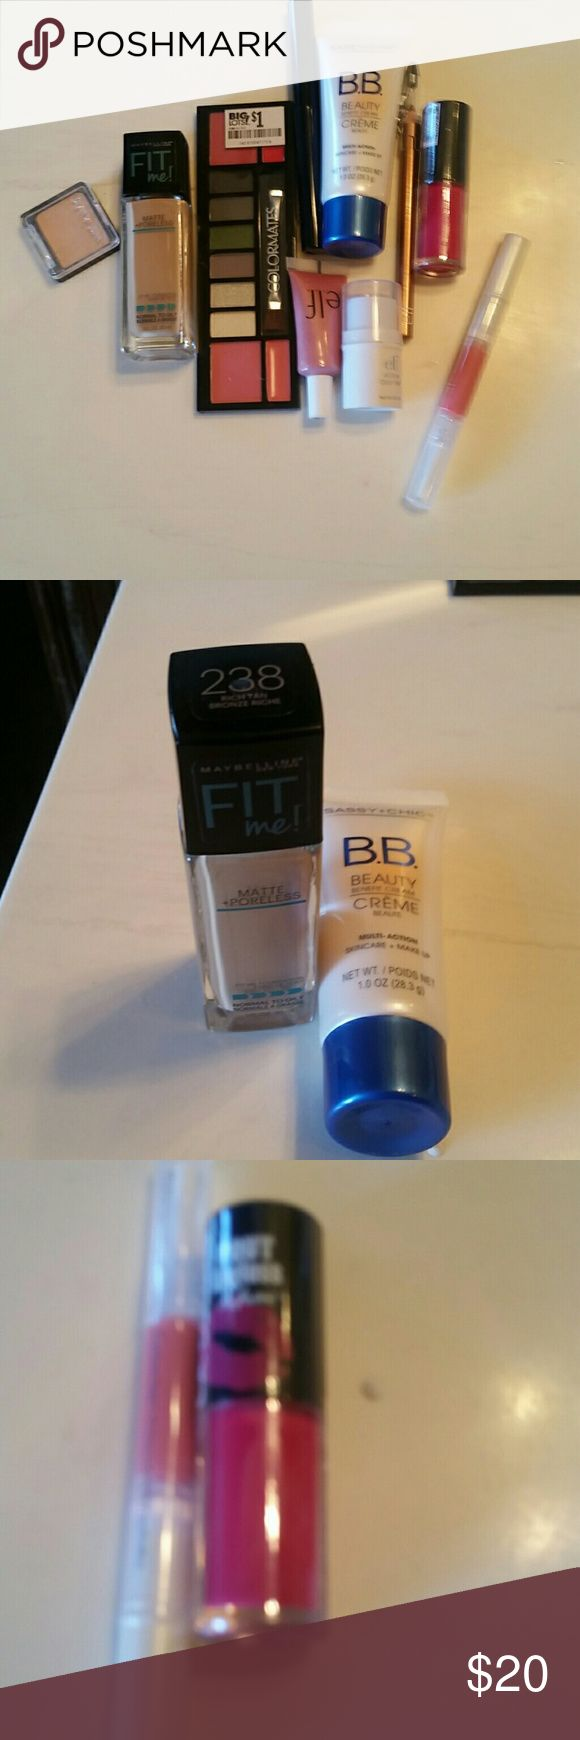 *LOWEST* Makeup bundle 2 eyeshadow sets - creme Brule was tested with my finger tip, never actually used. BB creme. Used once, too light for me. Maybelline fit me, matte poreless. Color 238 - rich tan. Never used, too dark for me. Elf and L.A. colors lip gloss. Never used. Elf is flirt, LA is matte, deep berry color. Gold eyeliner, never used, sharpened on cap. Mascara, never used. Elf facial shimmer in pink lemonade, never used. Elf all over color stick in pink lemonade, never used. ELF…